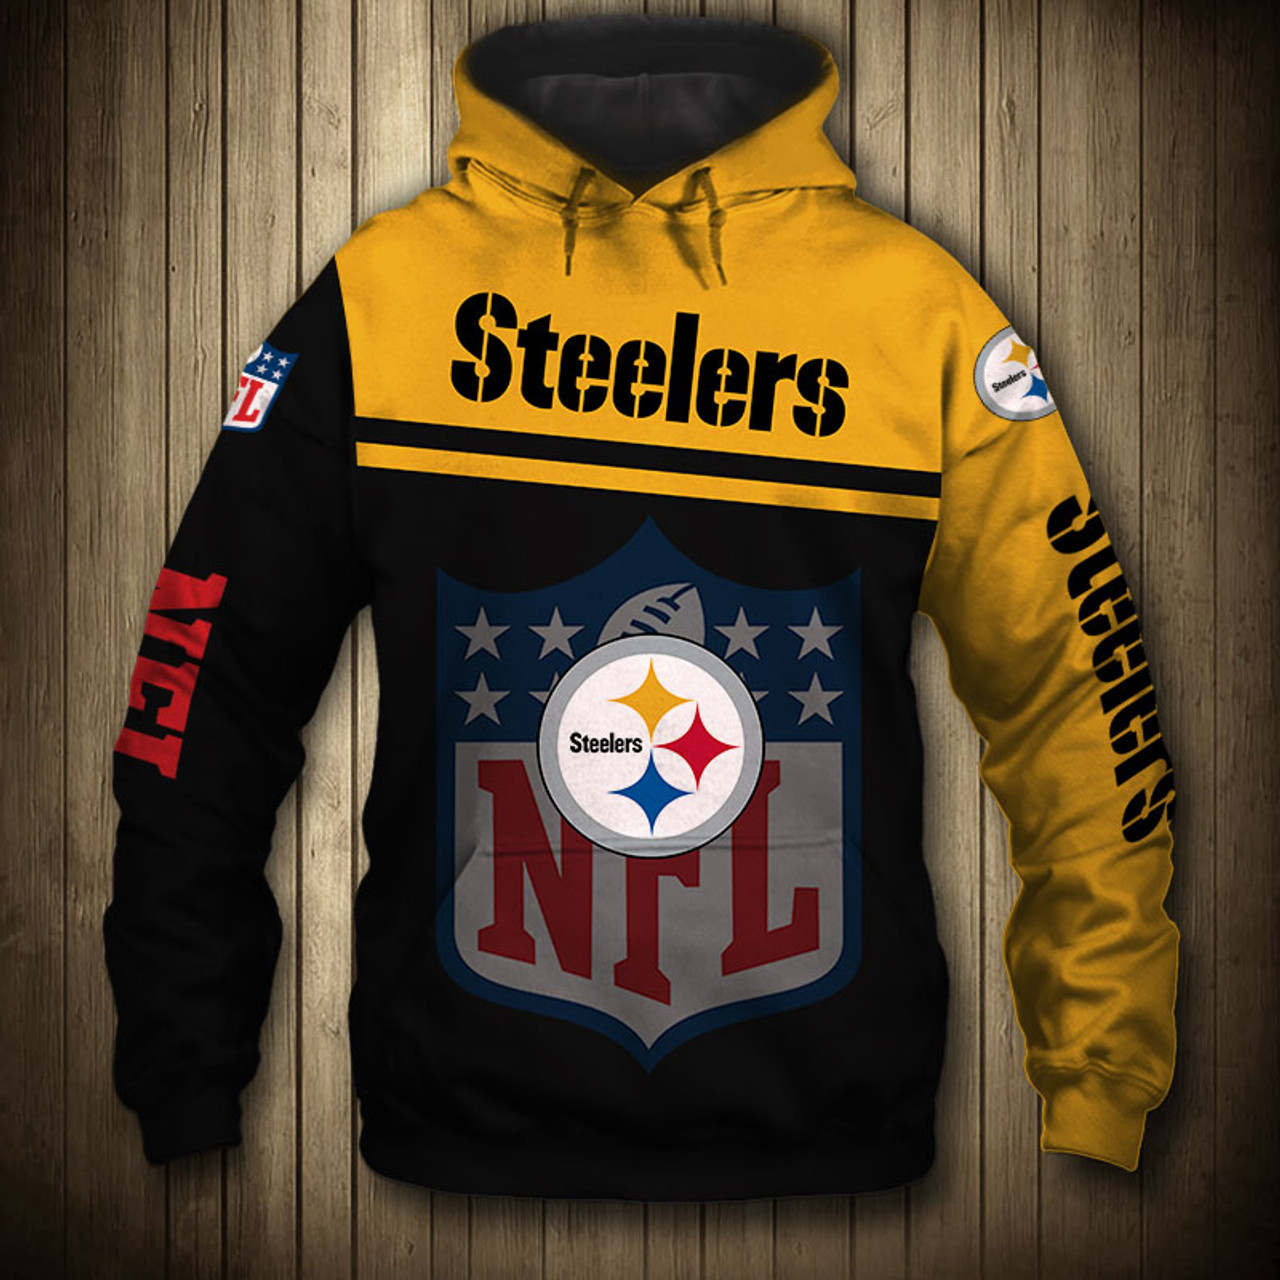 **(OFFICIAL-N.F.L.PITTSBURGH-STEELERS-PULLOVER-HOODIES/3D-CUSTOM-STEELERS-LOGOS & OFFICIAL-STEELERS-TEAM-COLORS/CUSTOM-3D-DETAILED-GRAPHIC-PRINTED-DOUBLE-SIDED-DESIGN/IF-YOU-DON'T-LIKE-MY-STEELERS/KISS-MY-END-ZONE/WARM-PREMIUM-EAGLES-PULLOVER-HOODIES)**